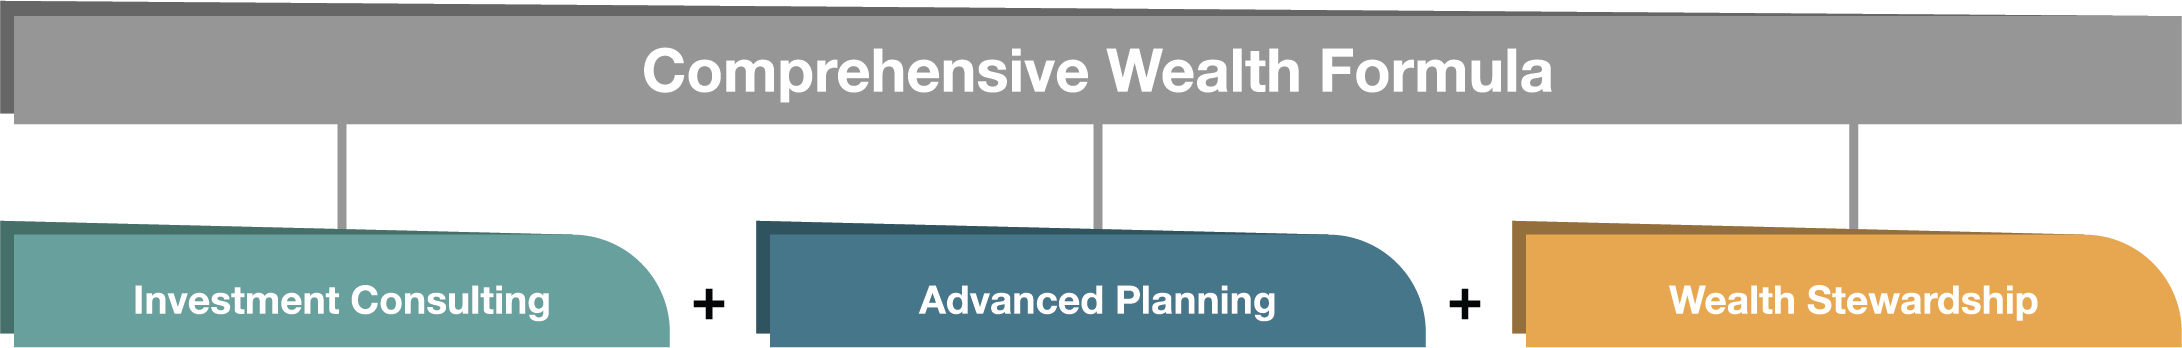 Comprehensive Wealth Formula